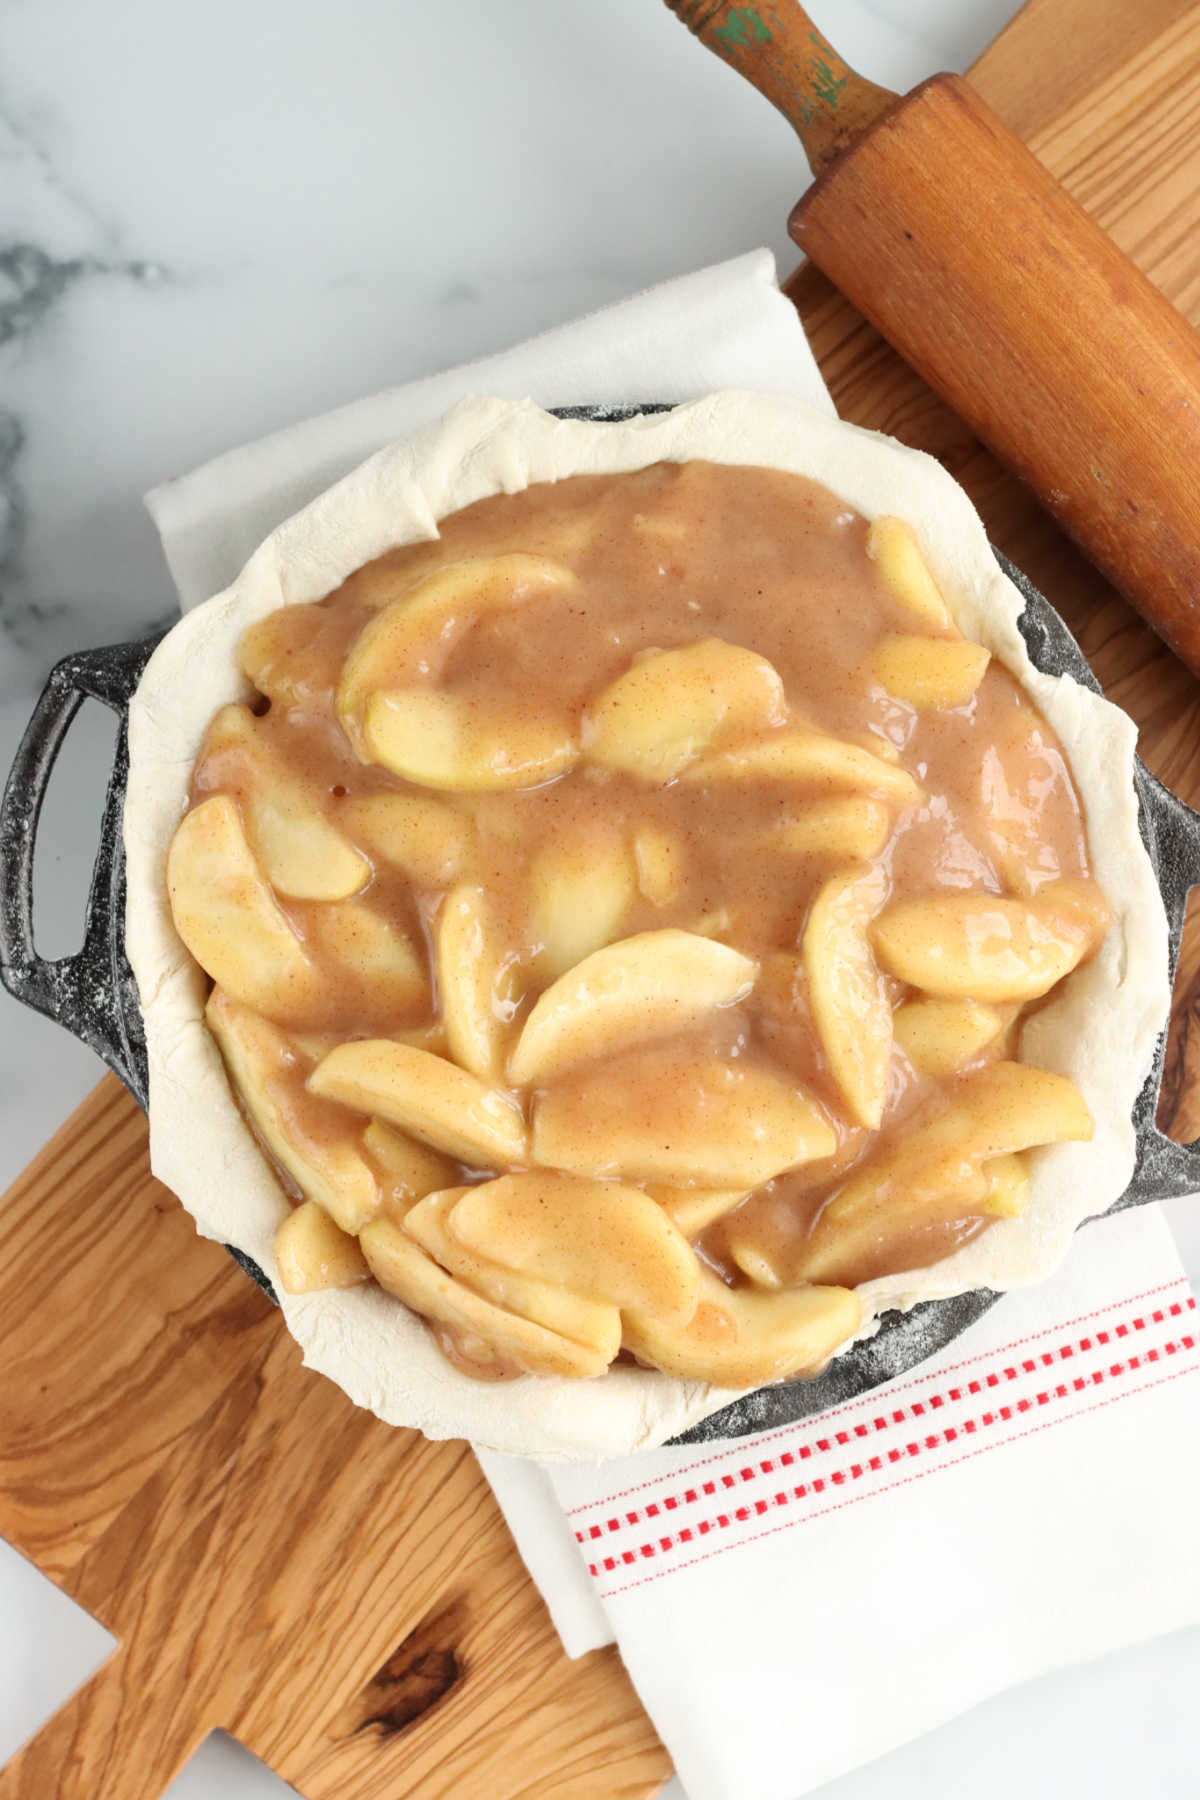 unbaked pie shell with apple pie filling on wooden cutting board, wooden rolling pin side.